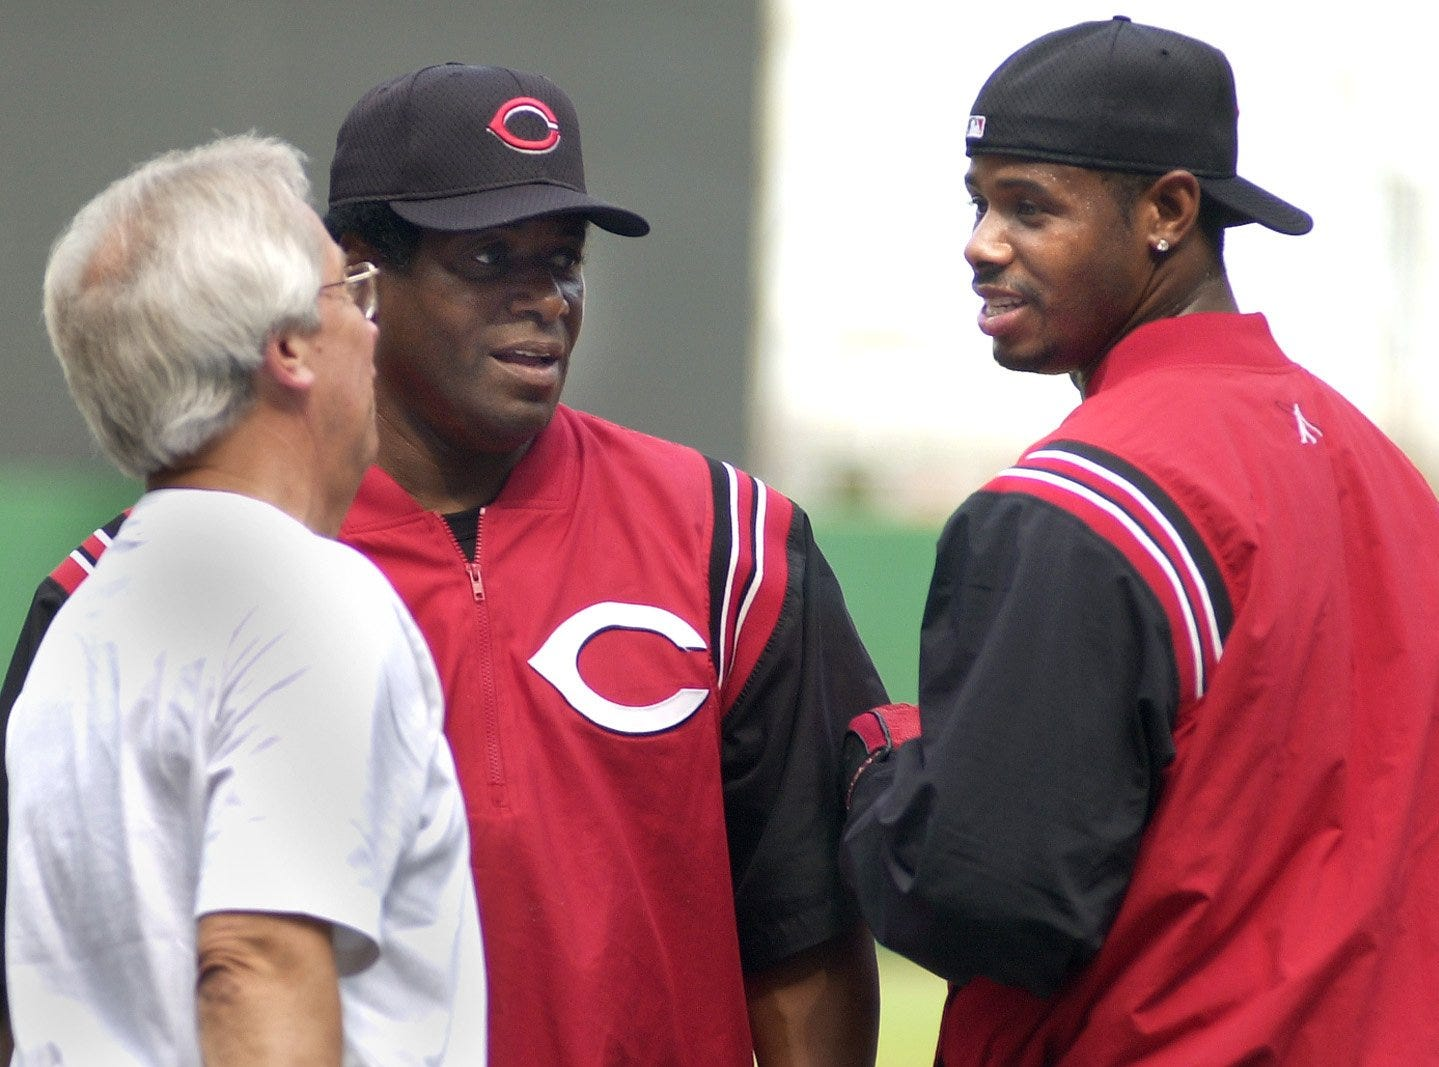 Text: 2001.0615.10.1--REDS RETURN--Ken Griffey, Jr., talks with Reds broadcaster Marty Brennaman as Ken Griffey, Sr. listens during batting practice Friday, June 15. Barry Larkin, Ken Griffey, Jr., and Aaron Boone returned to the lineup at Cinergy Field. The Reds have been plagued by injuries all season, and the trio's return brings new hope to a struggling ball club. Photo by Craig Ruttle/Cincinnati Enquirer